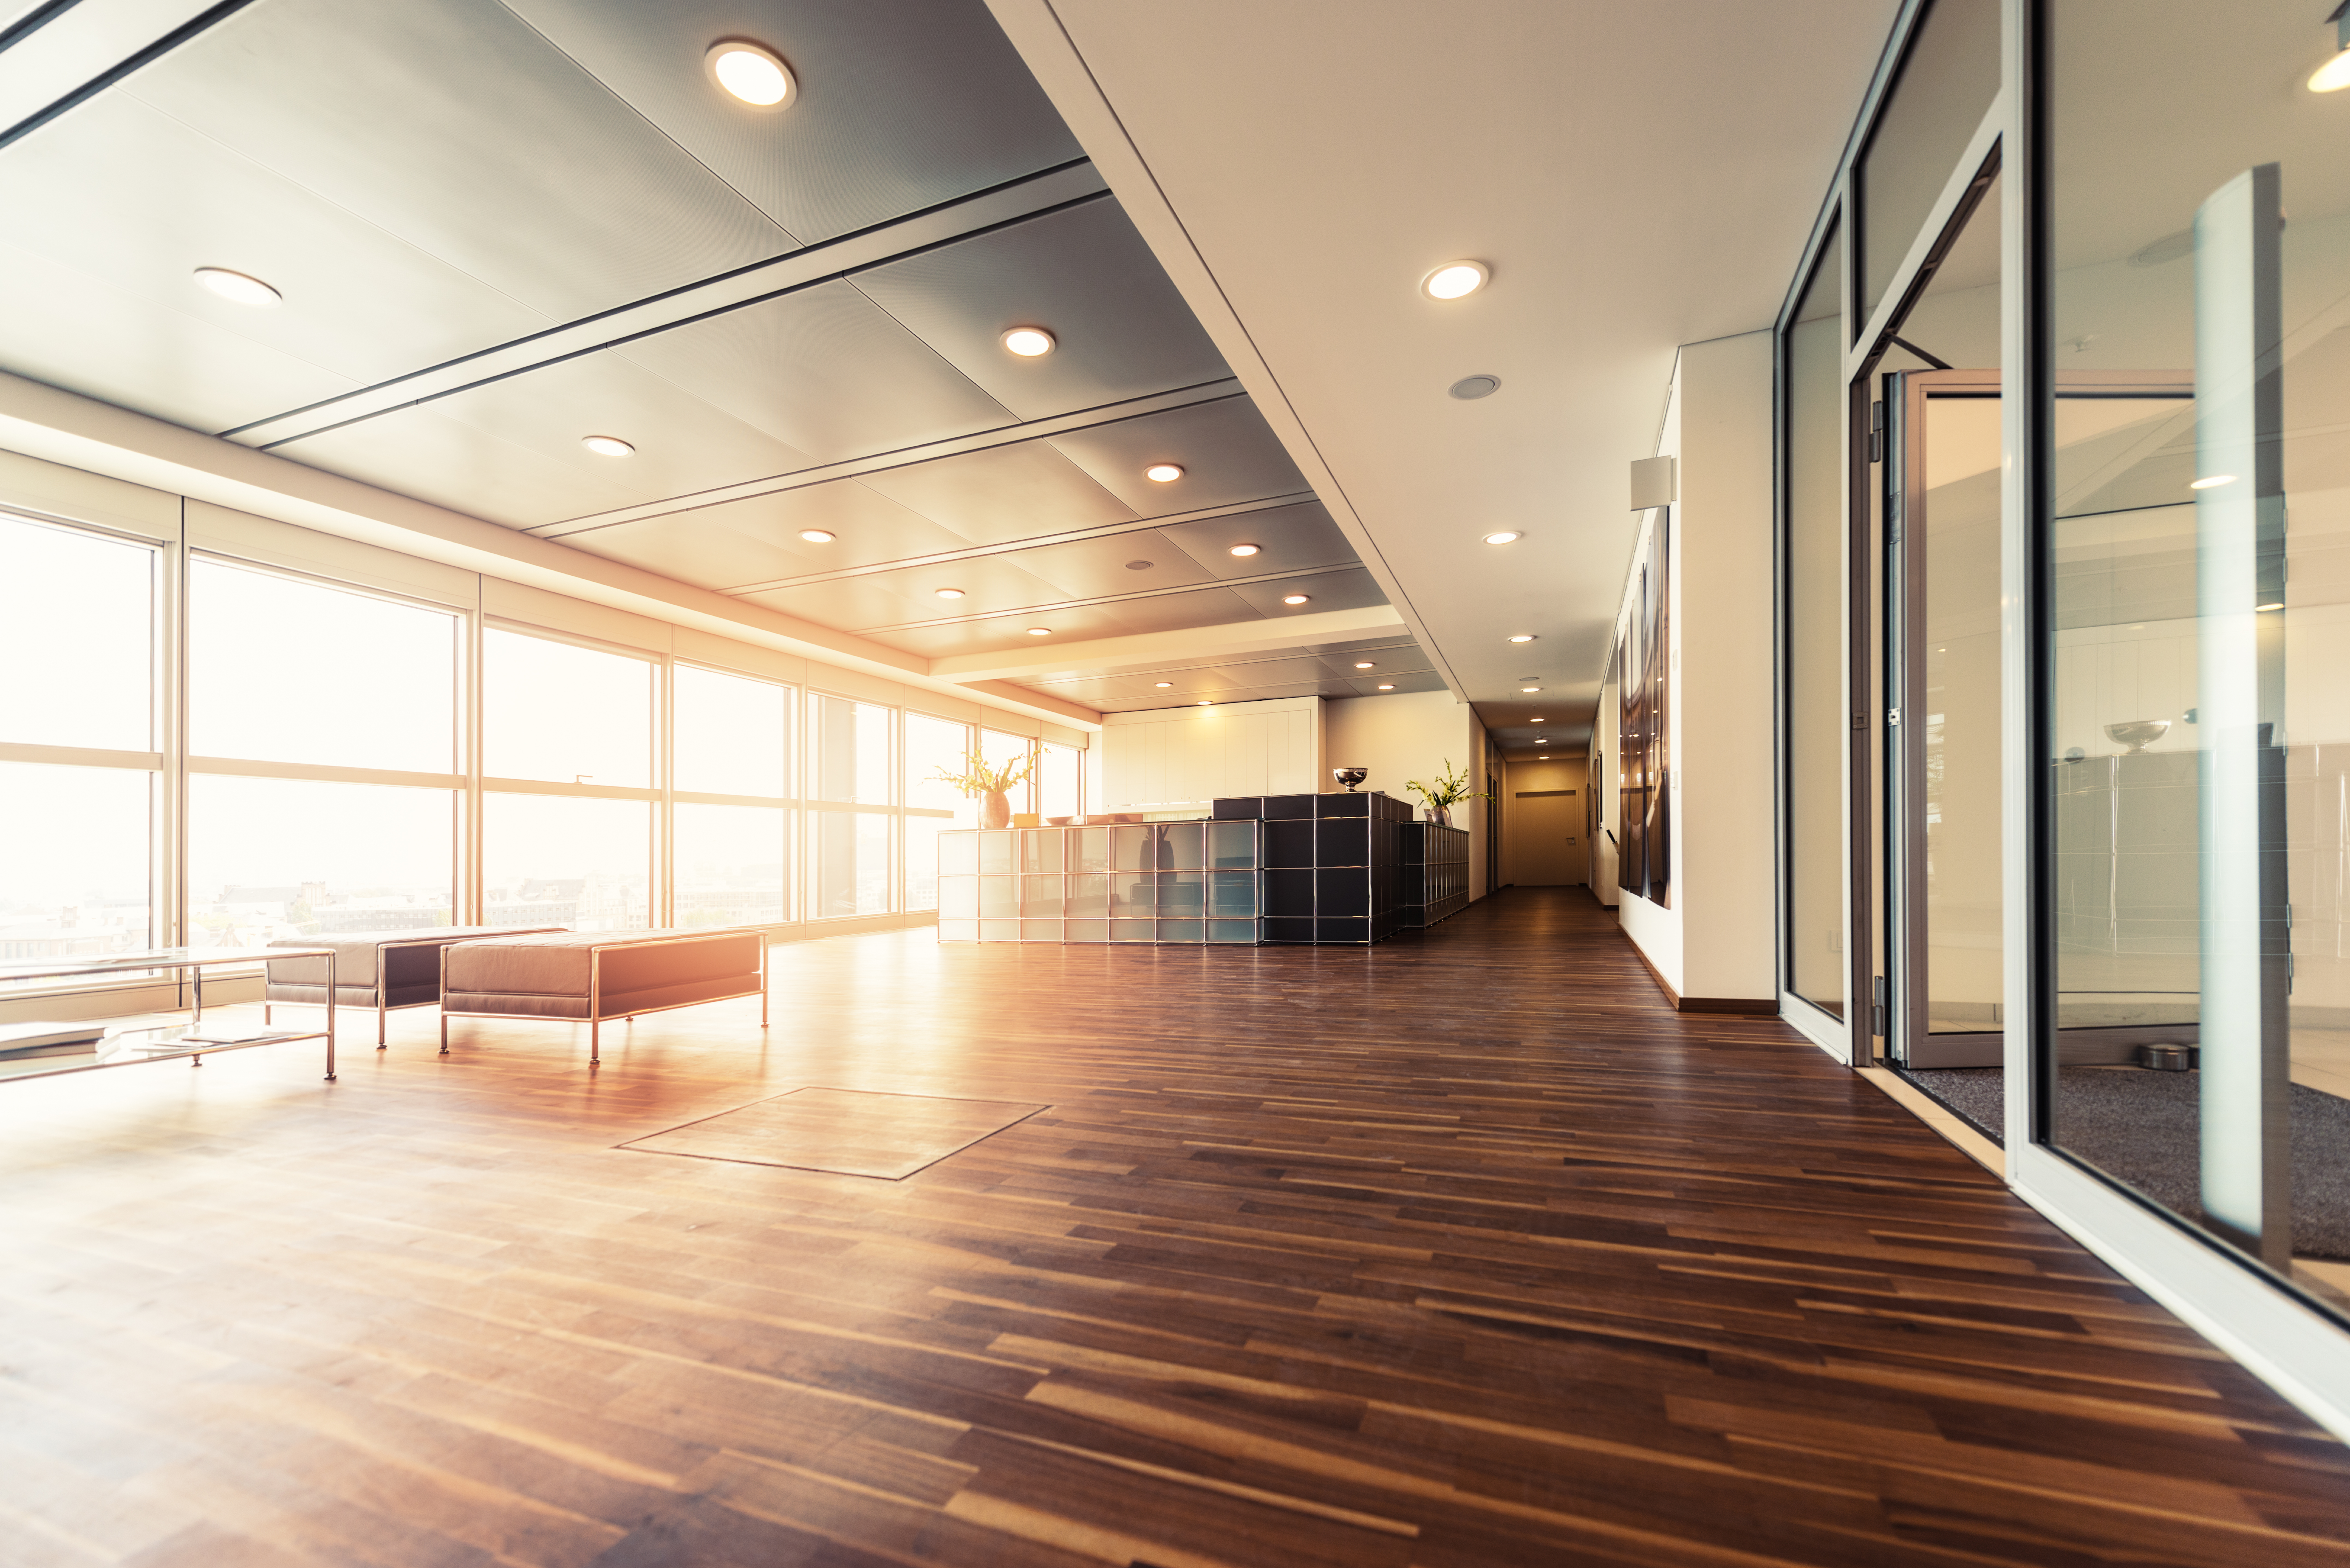 Natural light wood floor Texture Office Reception With Wood Floors And Window Wall Interiorcharm Office Reception With Wood Floors And Window Wall Rieke Office